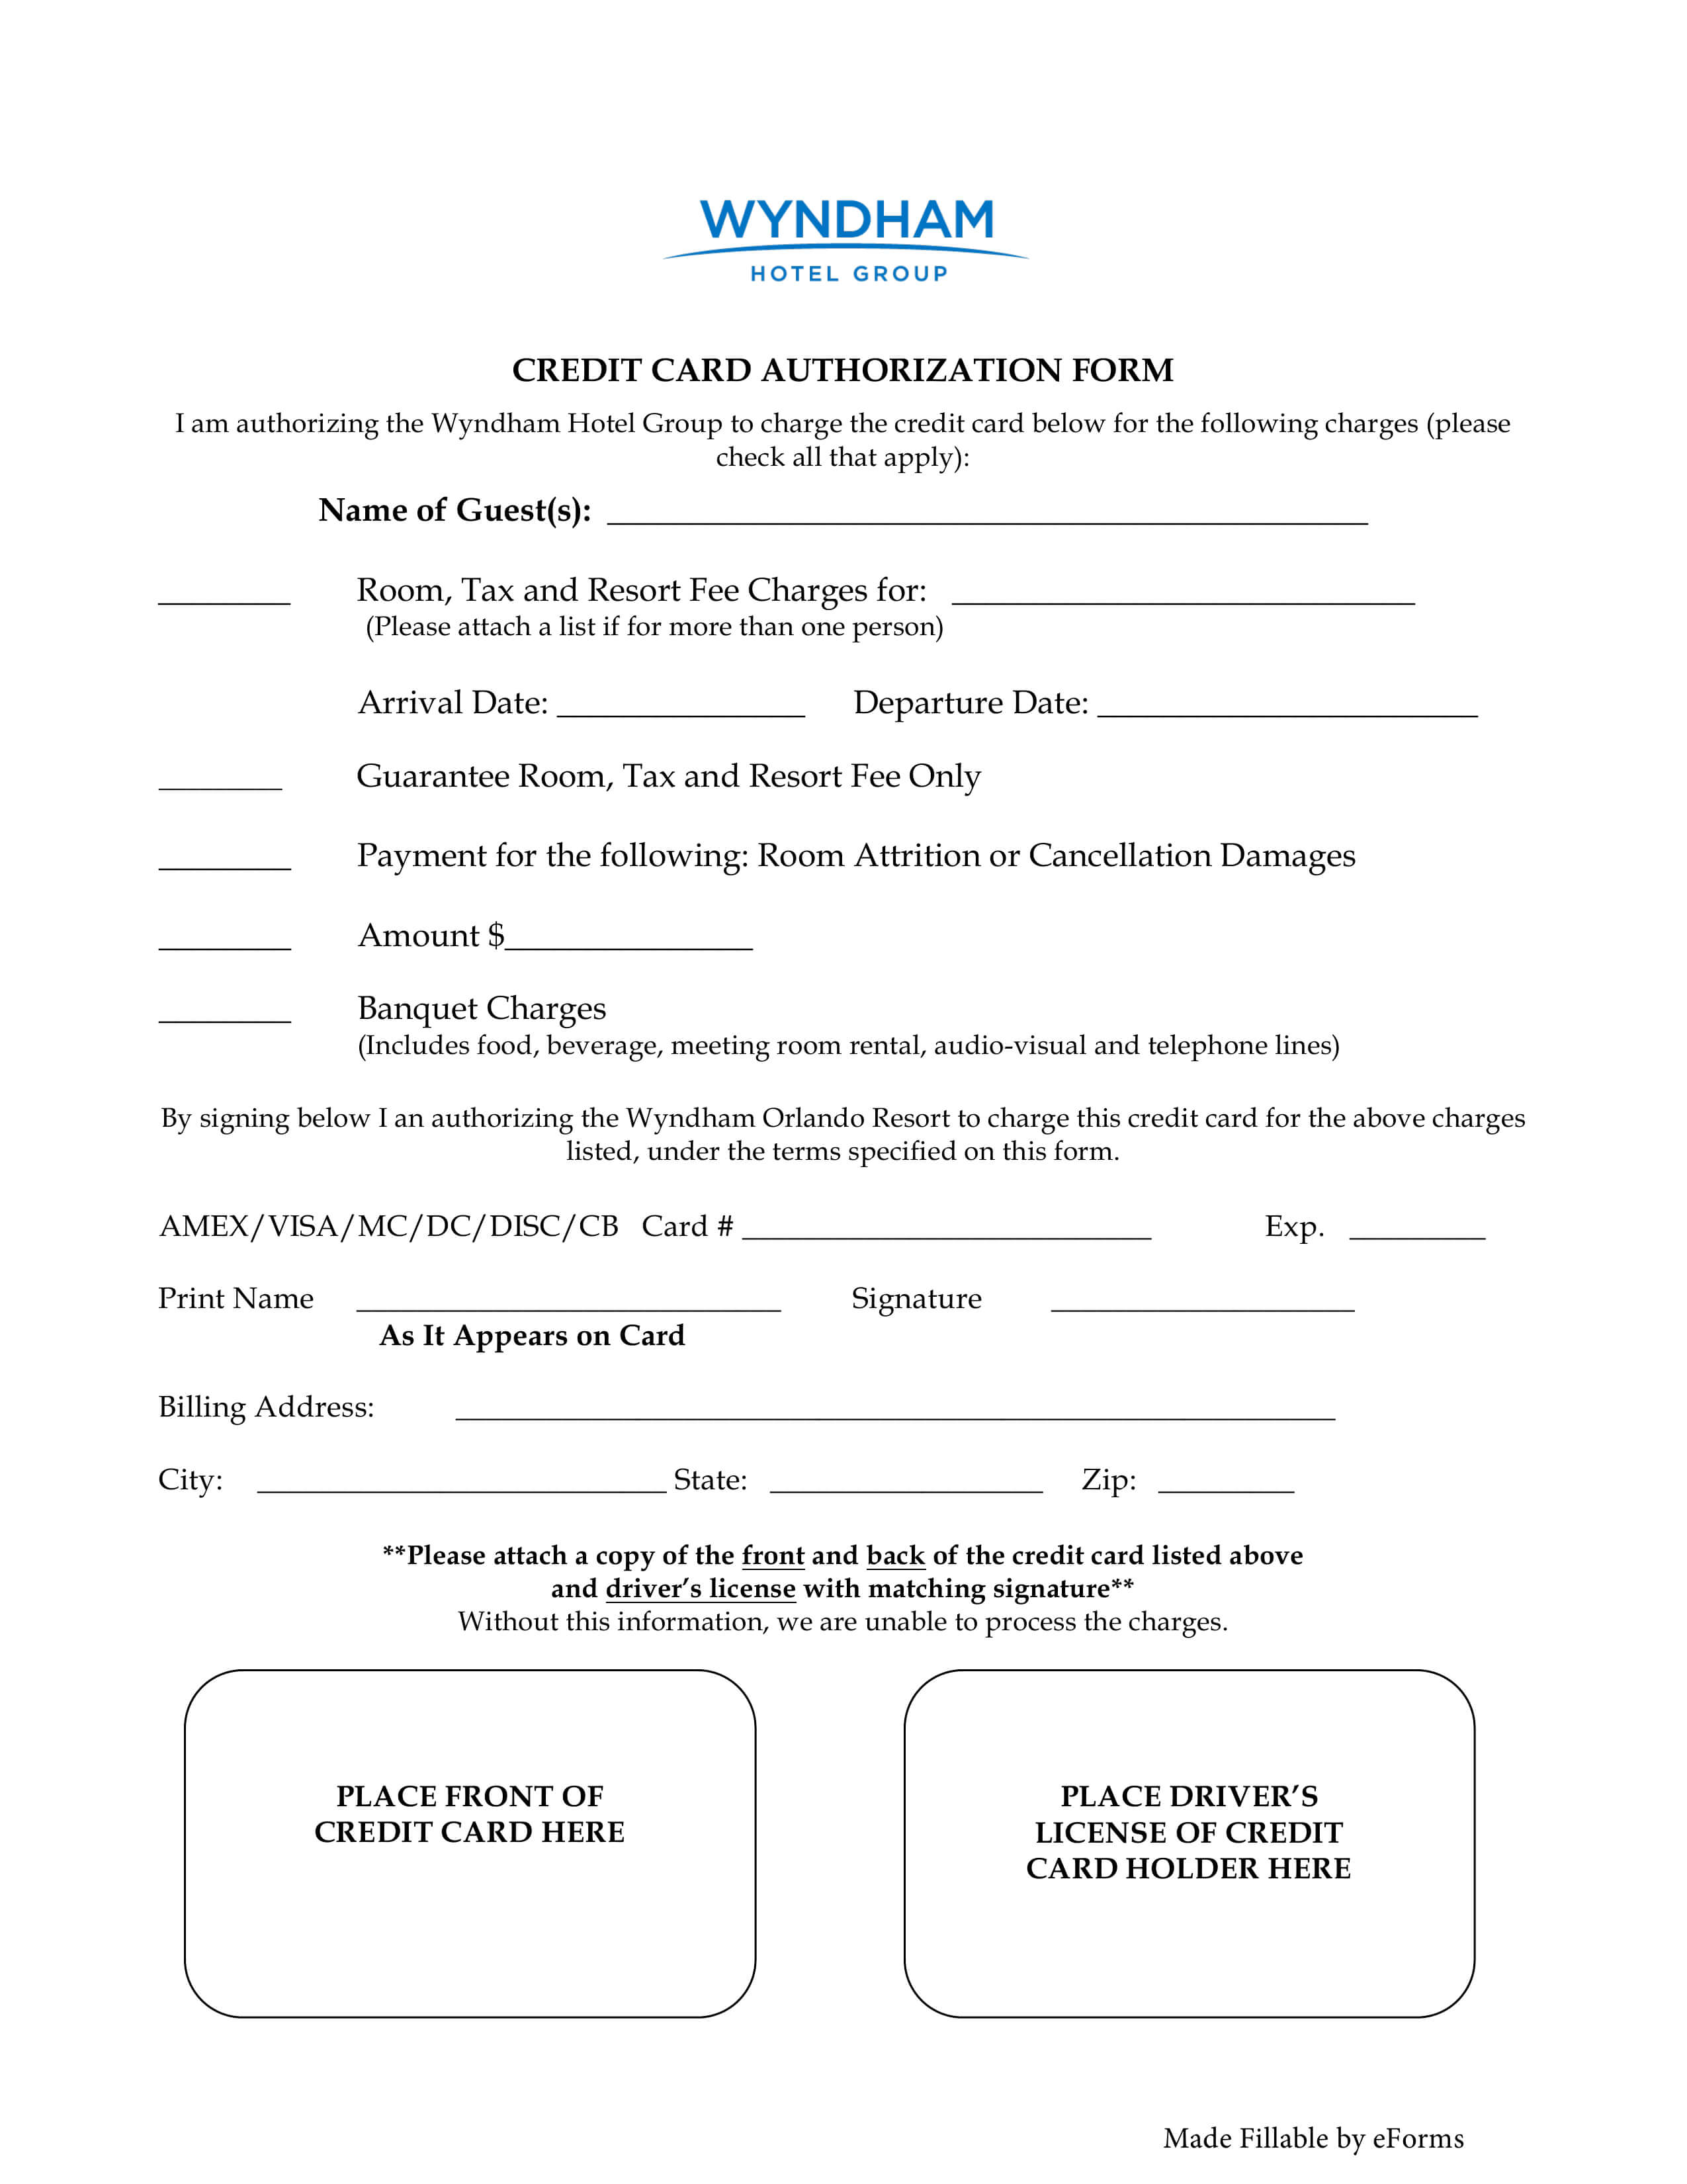 007 Wyndham Hotel Credit Card Authorization Form Template Intended For Credit Card Authorization Form Template Word